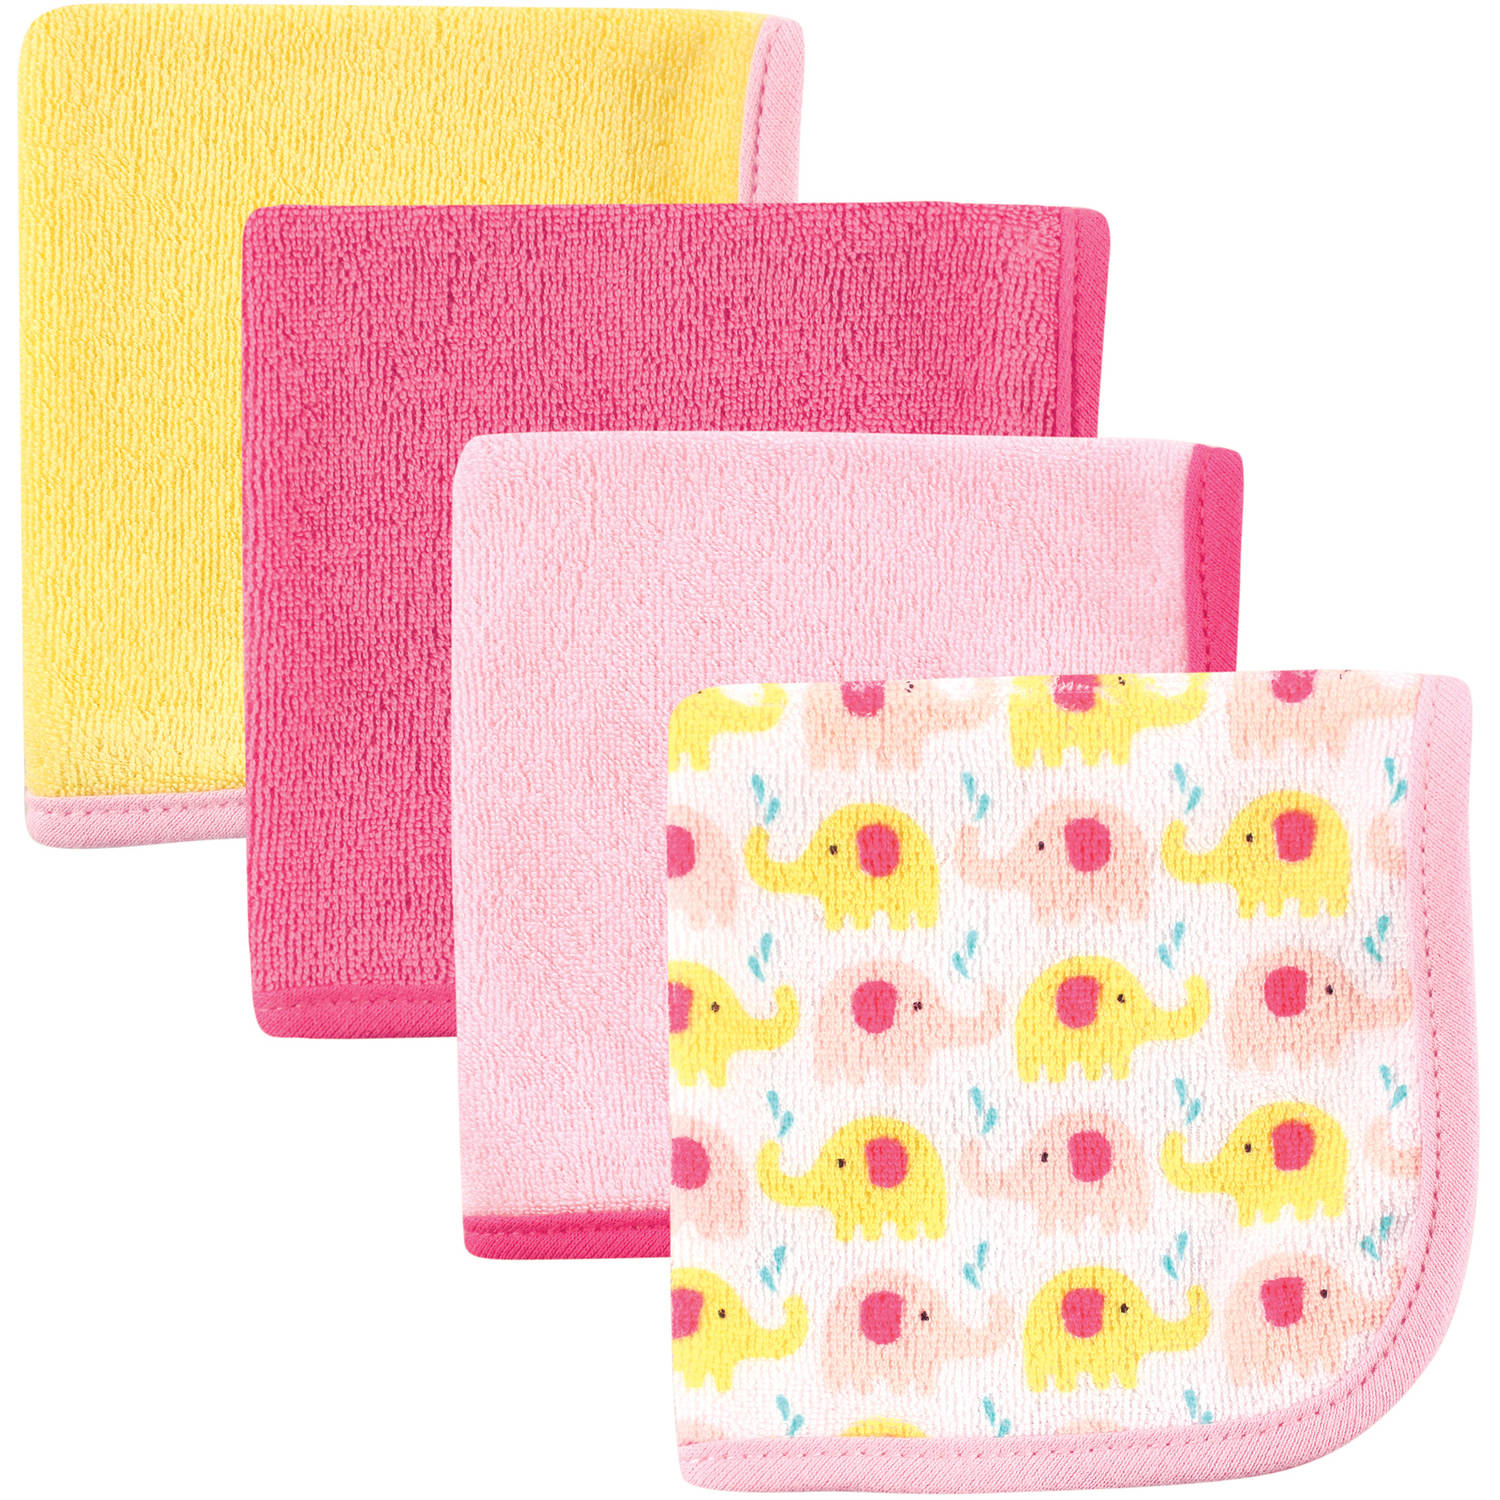 Luvable Friends Washcloths, 4pk, Pink Elephant